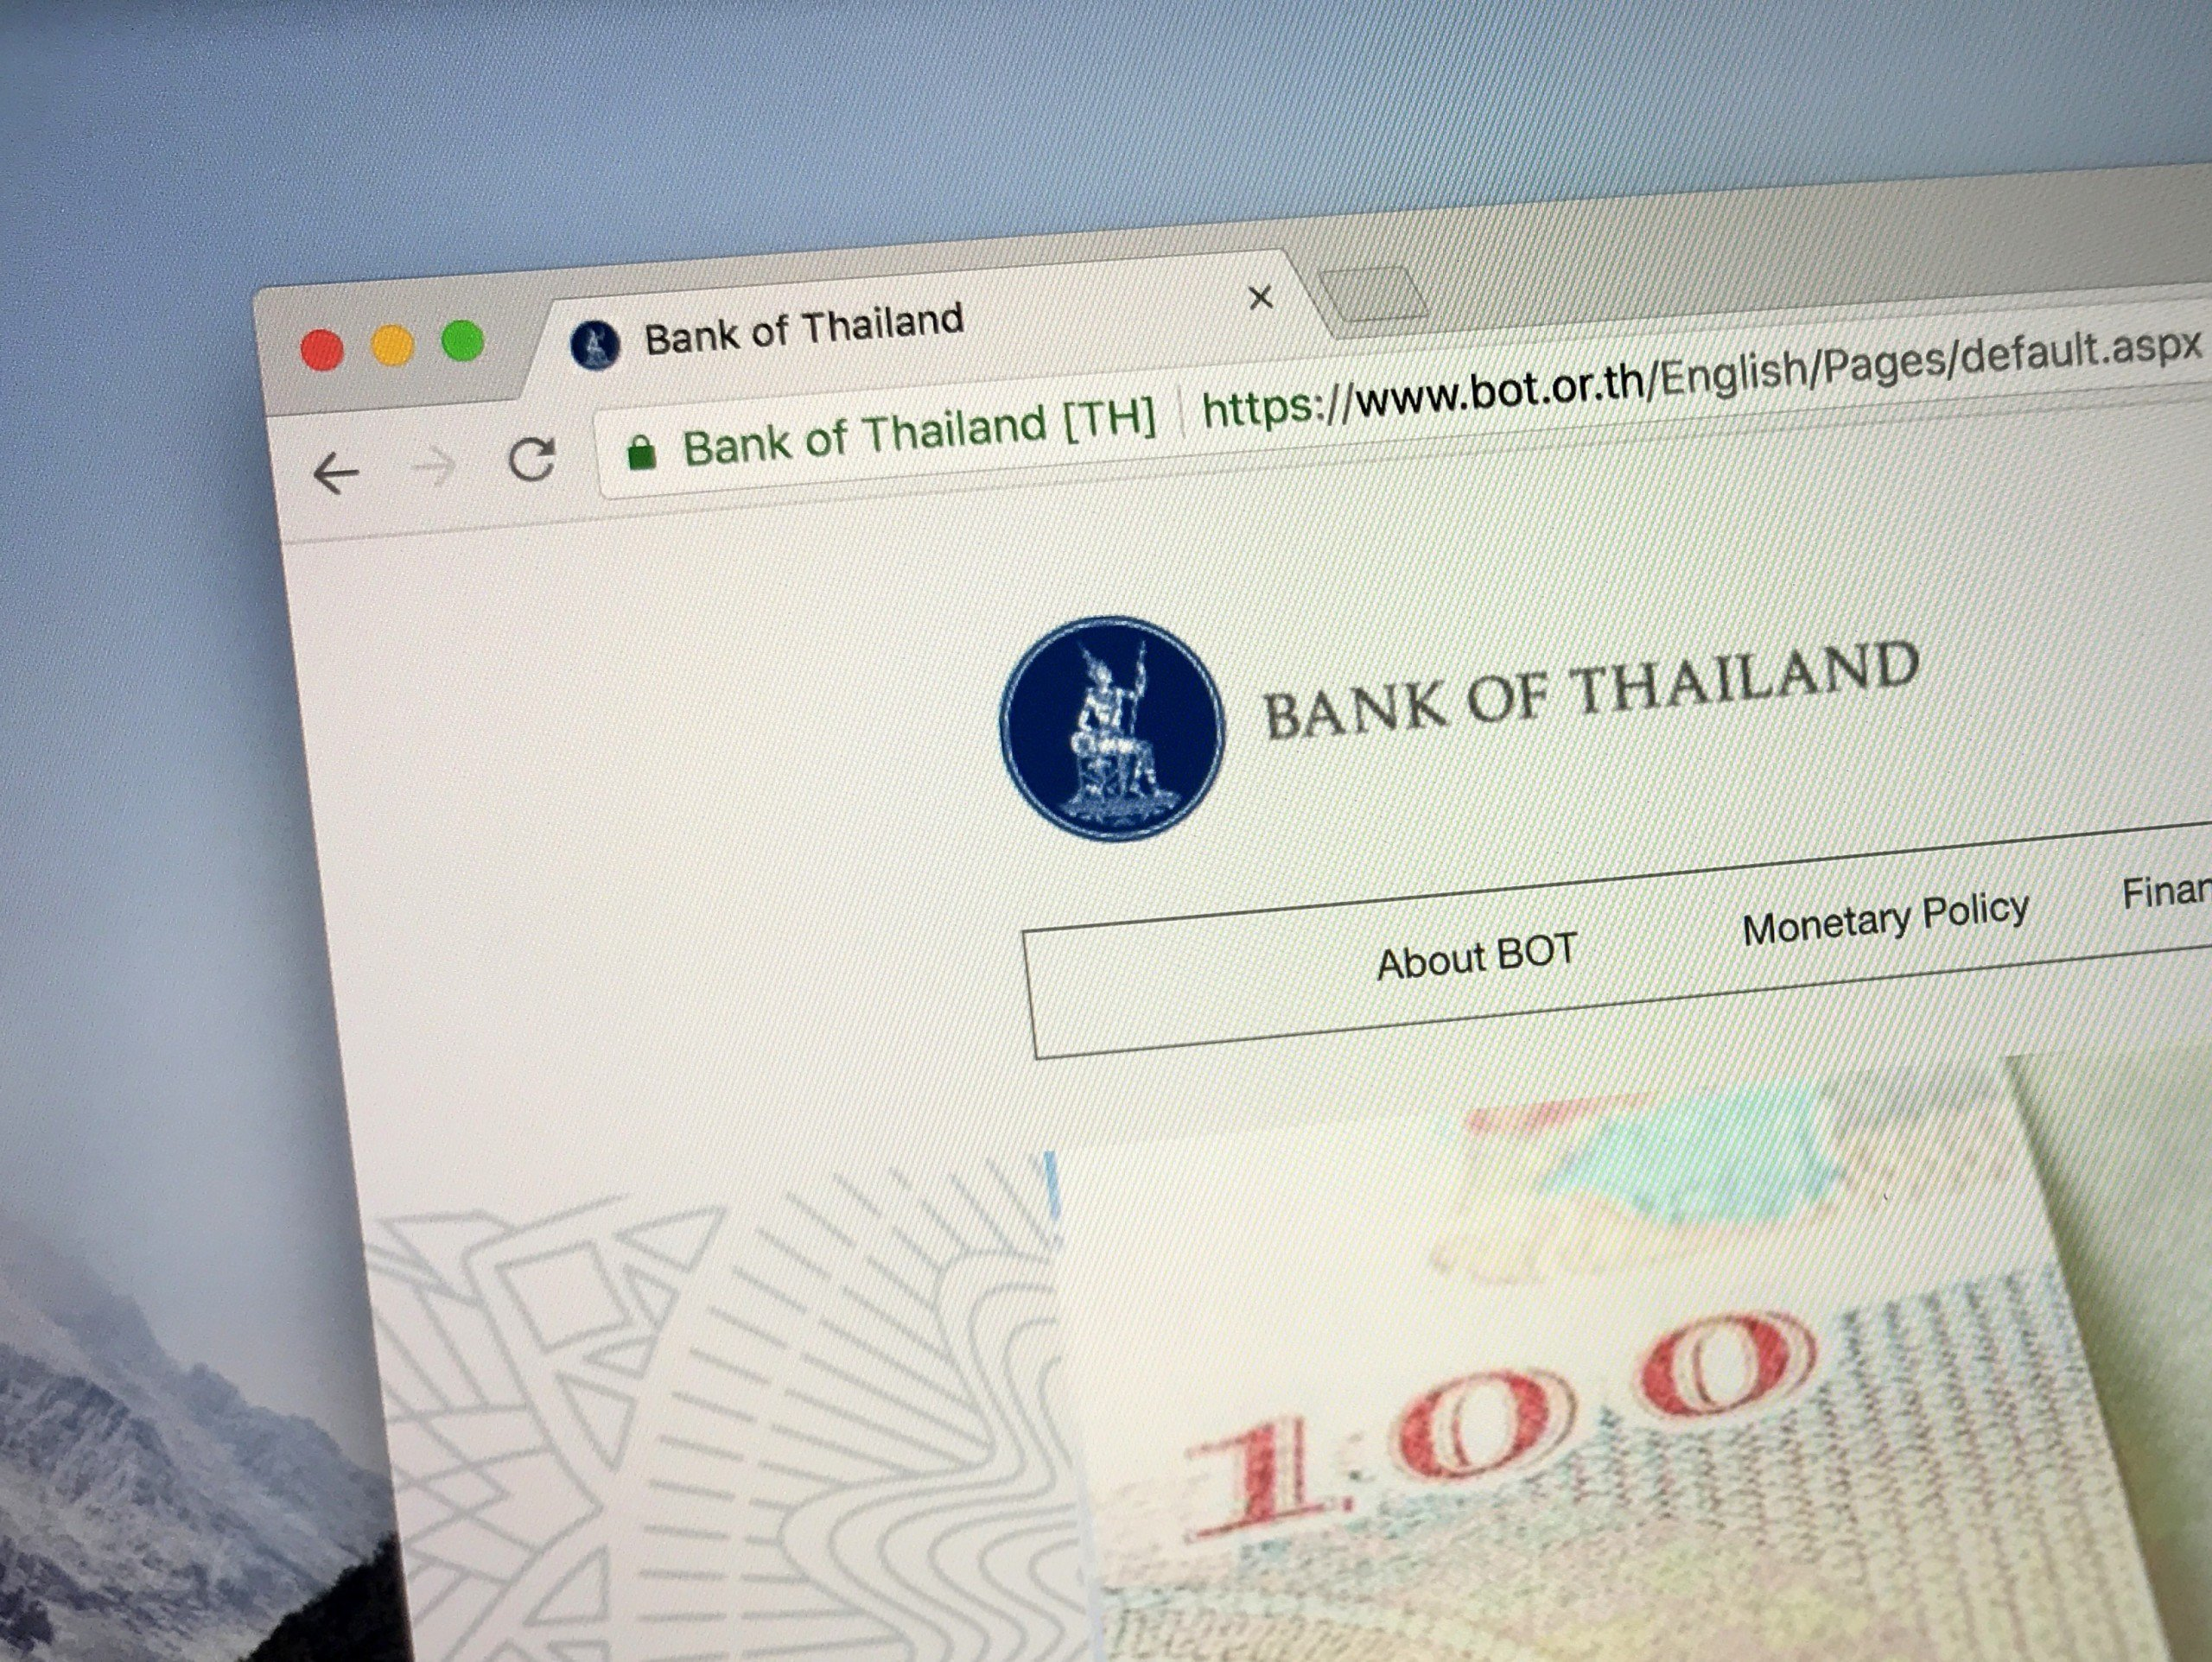 The central bank governor selection page on bank of thailand website